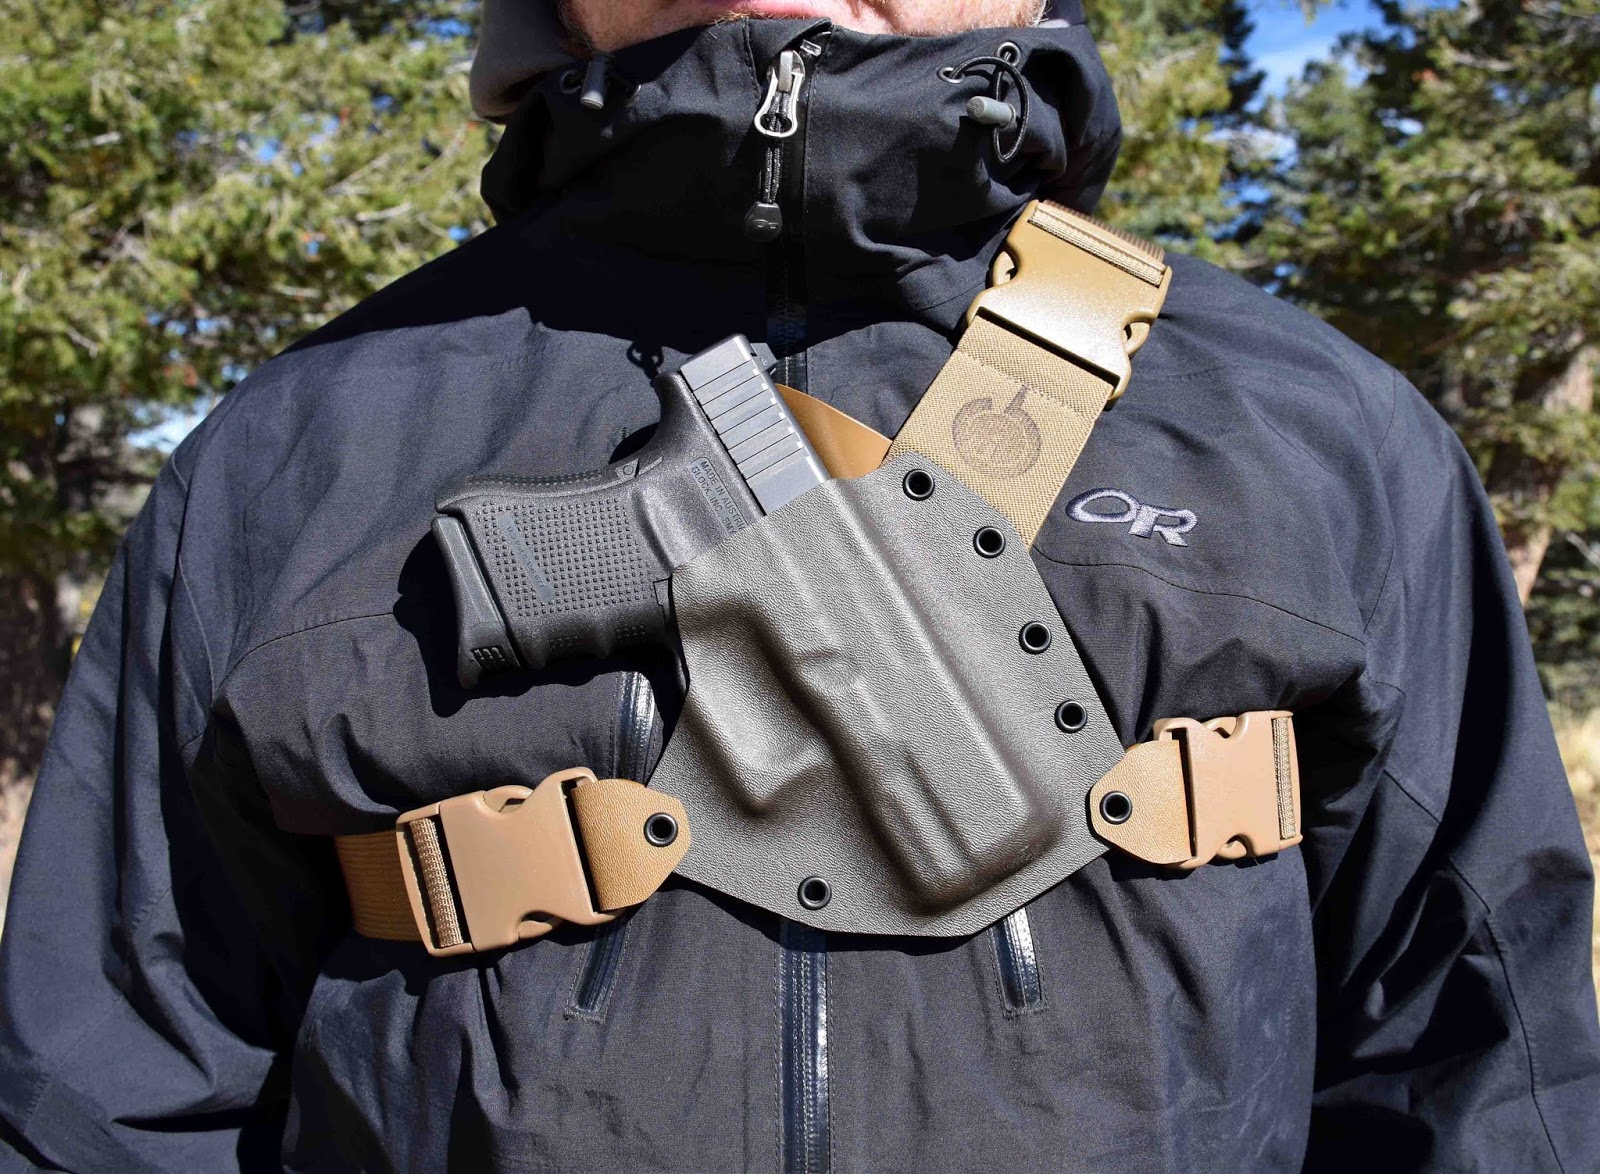 Gear Craft Holster Review